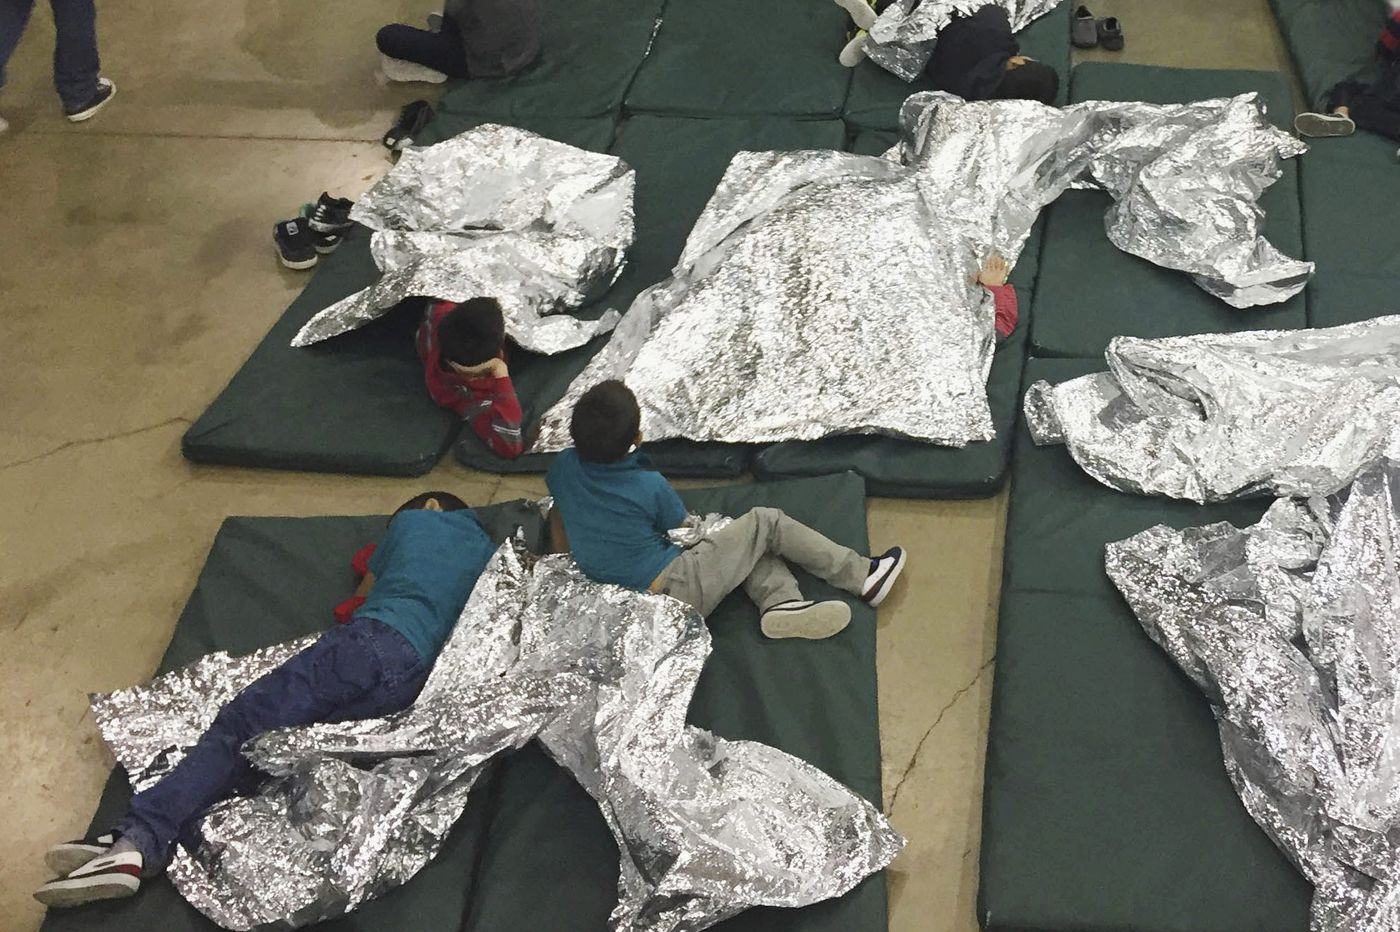 Trump's executive order does nothing to reunite the 2,000-plus children already separated from parents at U.S. border